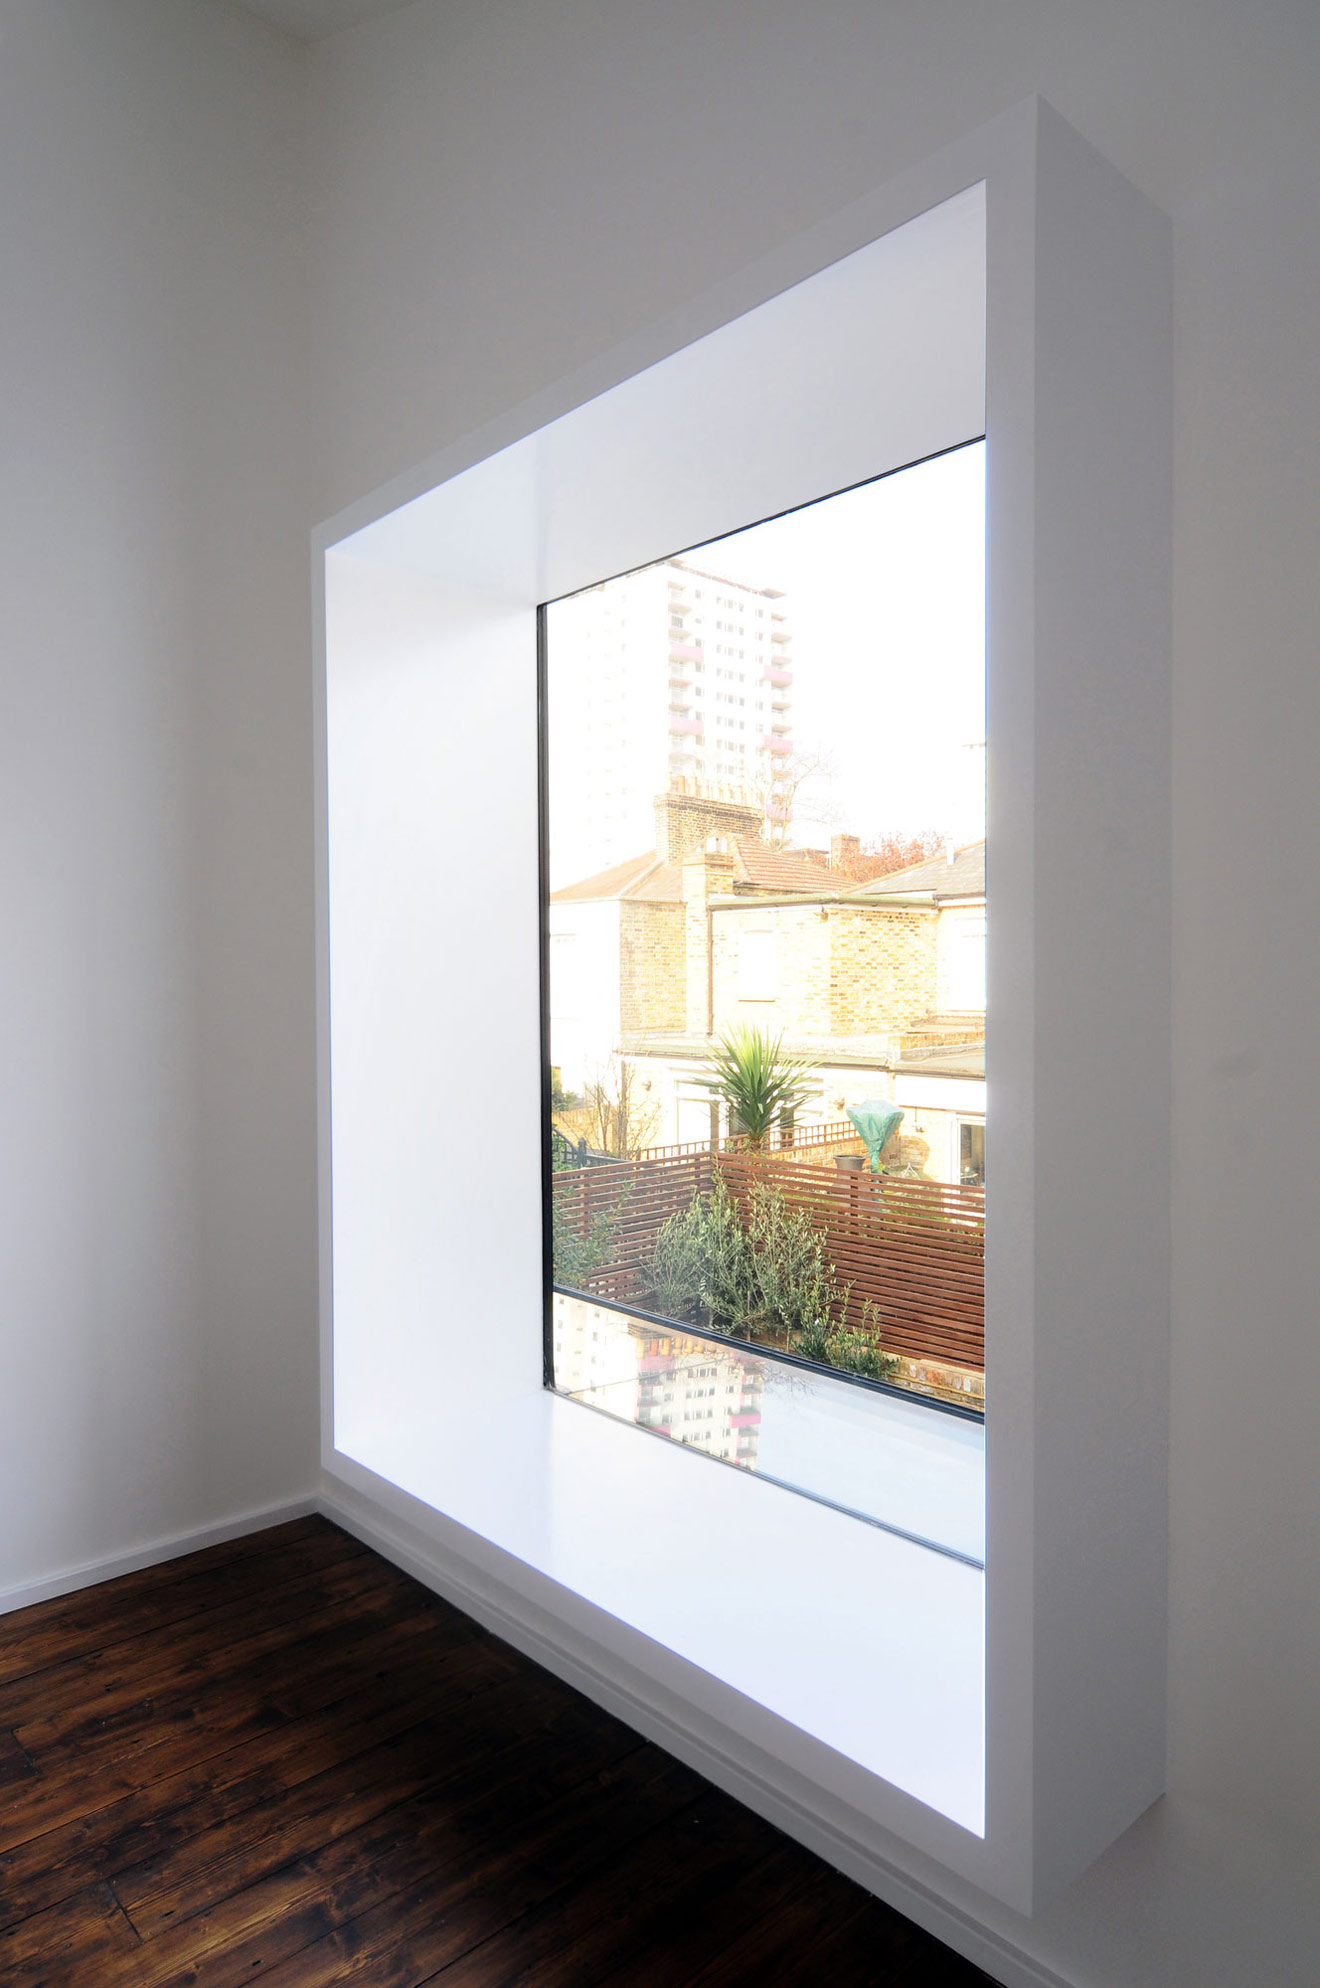 Http Www Freshpalace Com 2013 04 06 Family Home In London Modern Home London Large Window